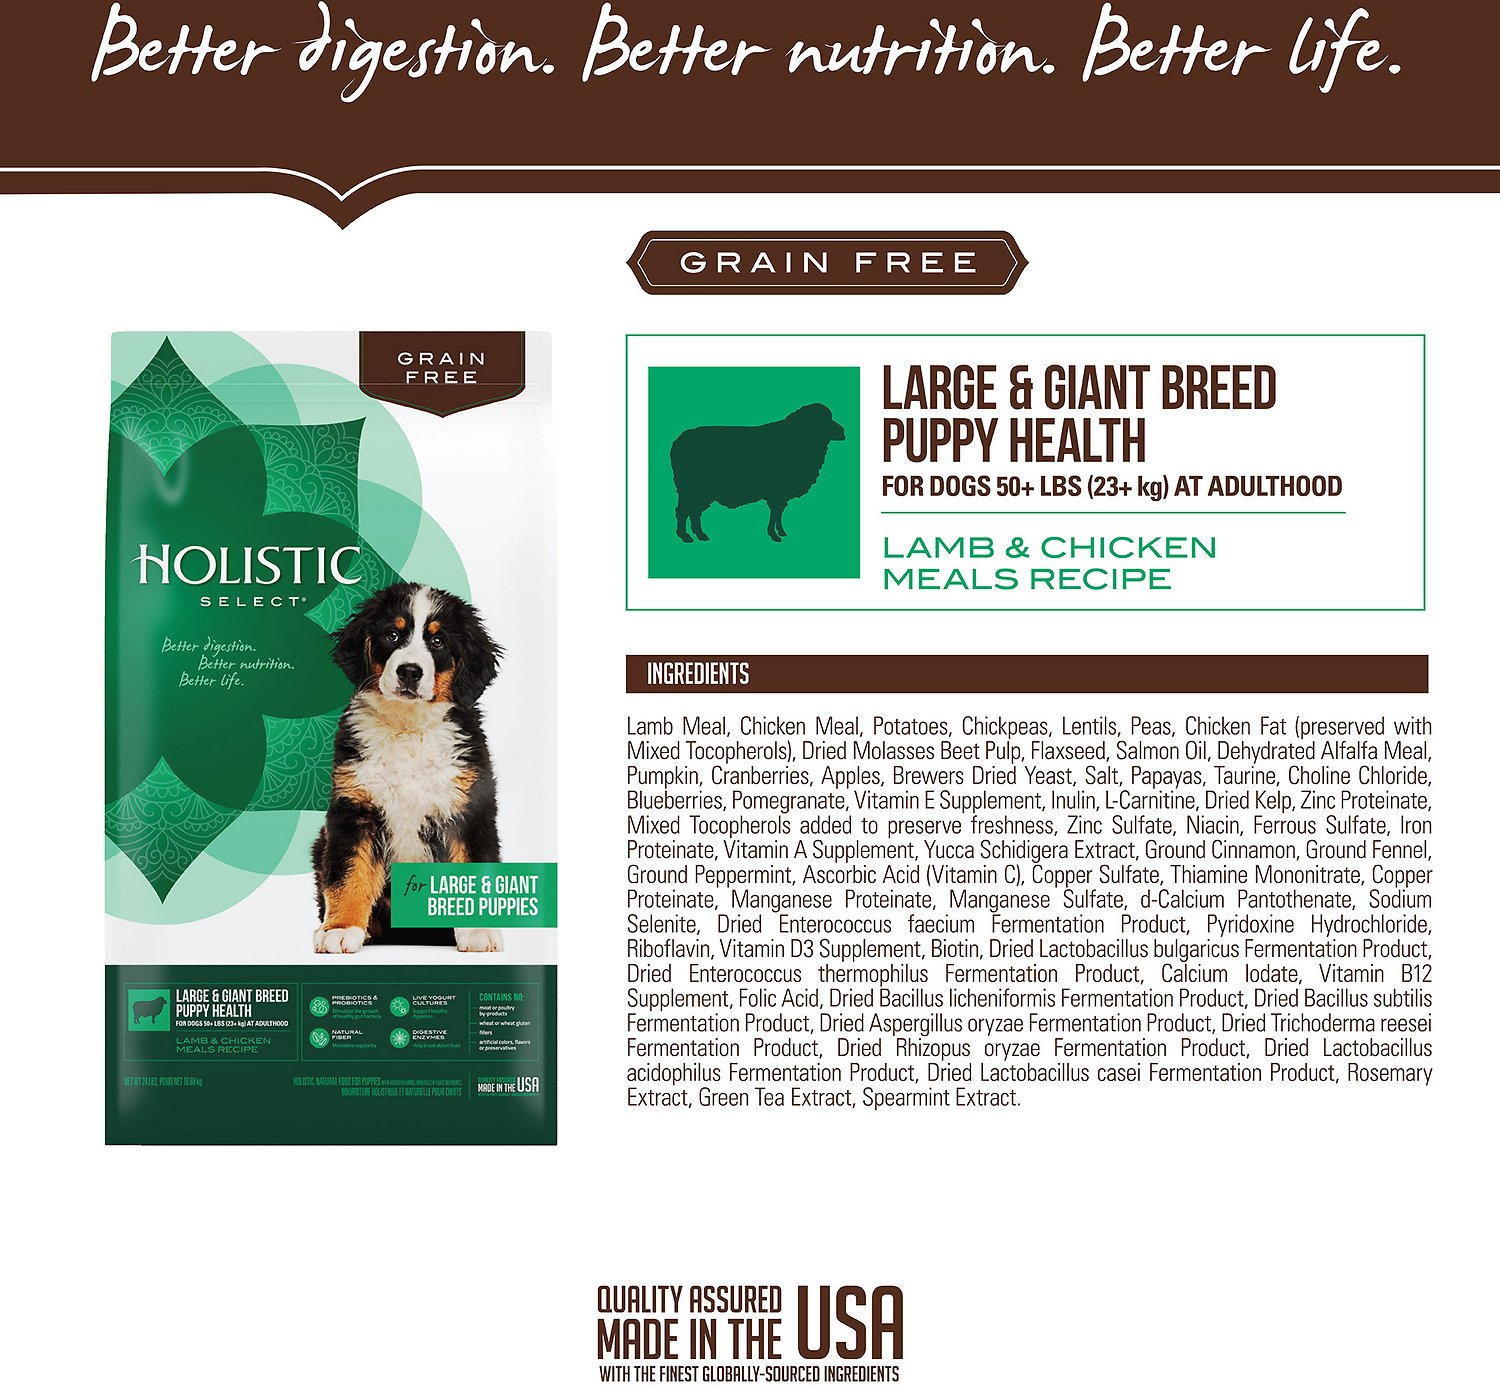 Holistic Select Grain Free Large Breed Puppy Food